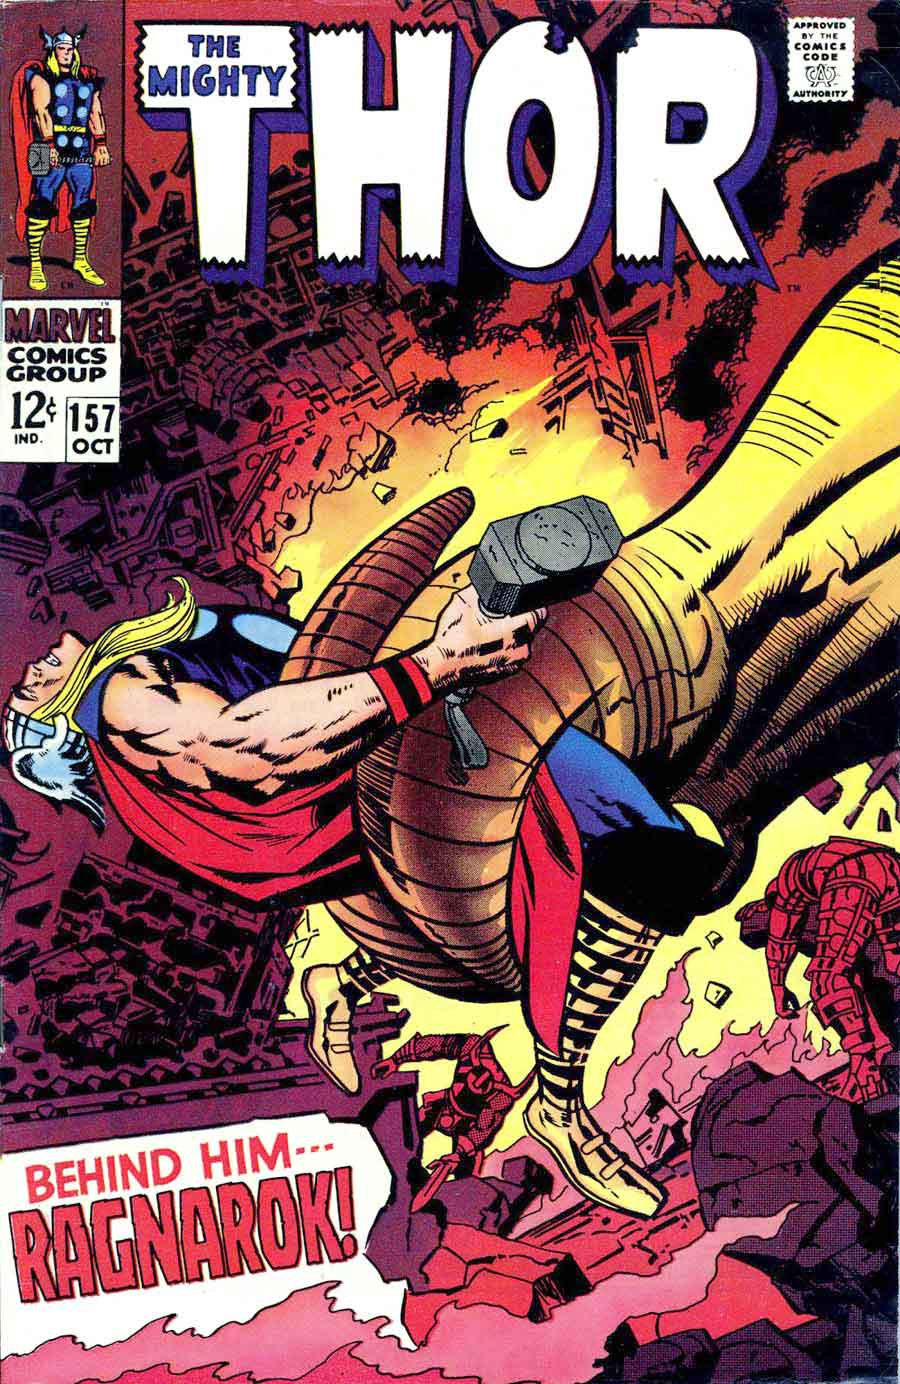 Thor v1 #157 marvel 1960s silver age comic book cover art by Jack Kirby